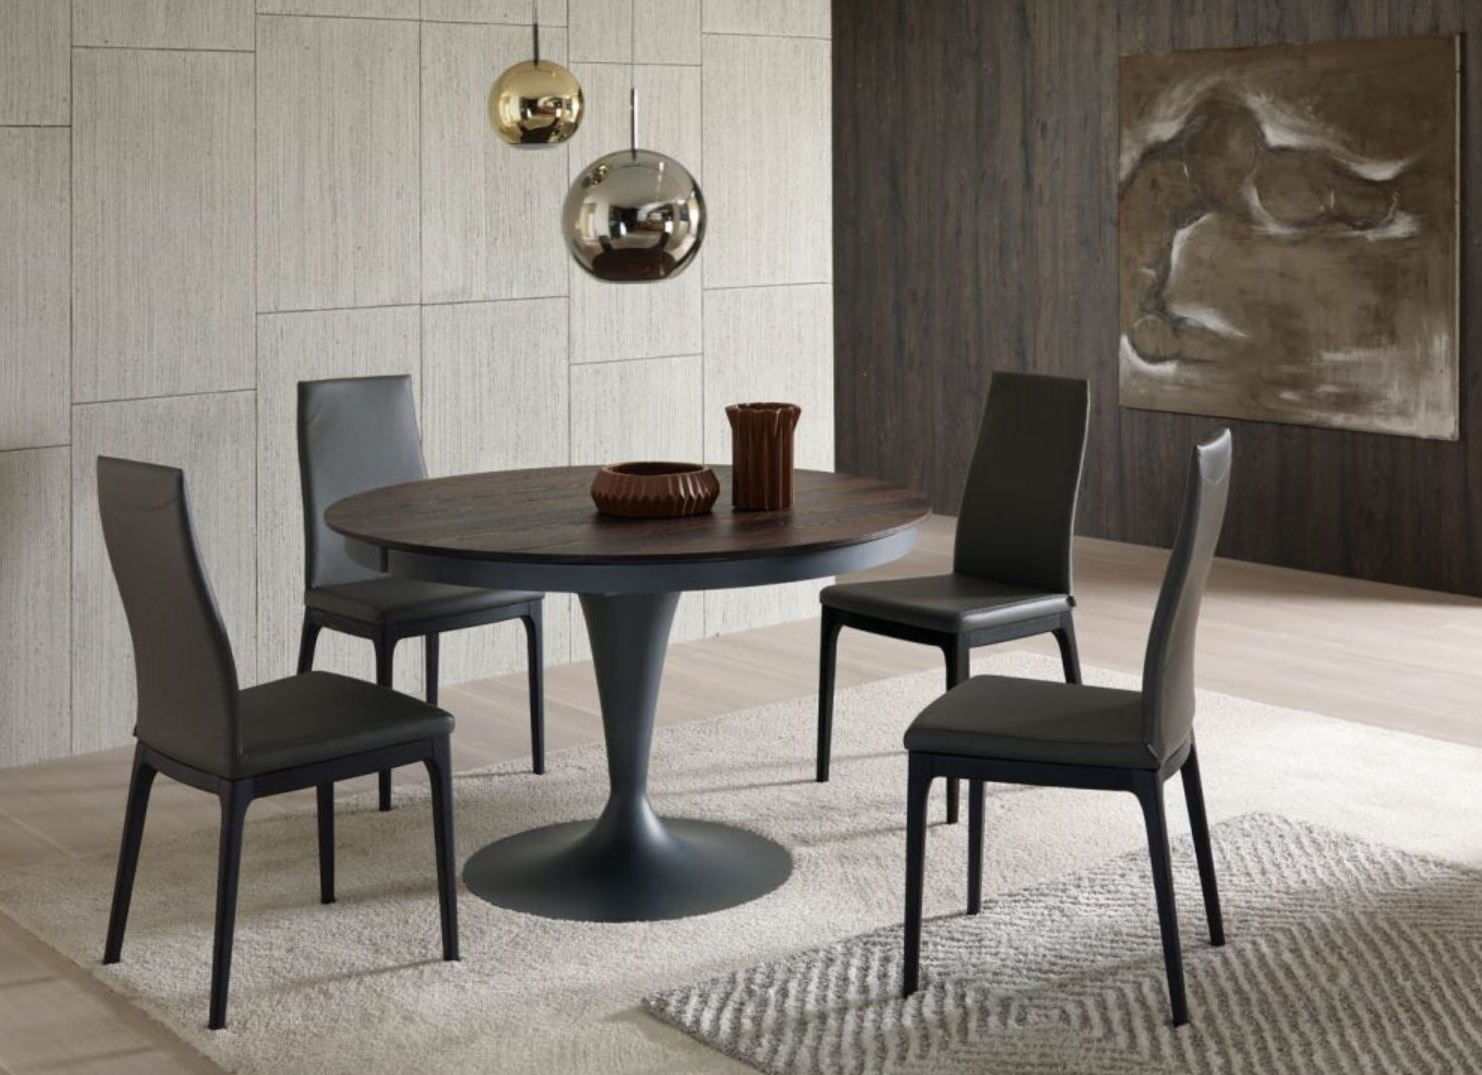 Eclipse Legno Dining Table Modern Furnishings with regard to Recent Eclipse Dining Tables